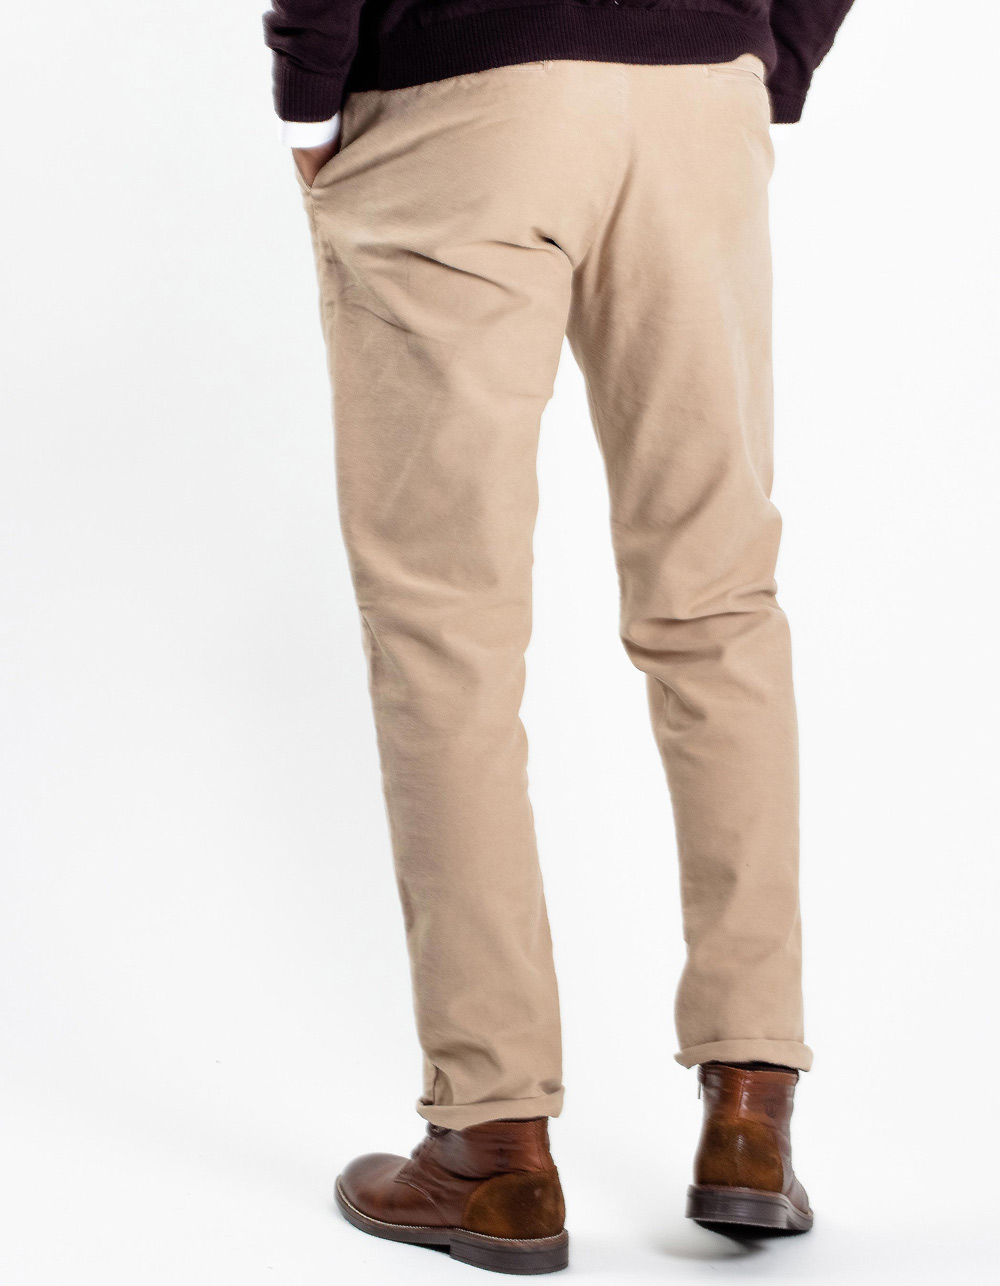 Beige chinos trousers - Backside